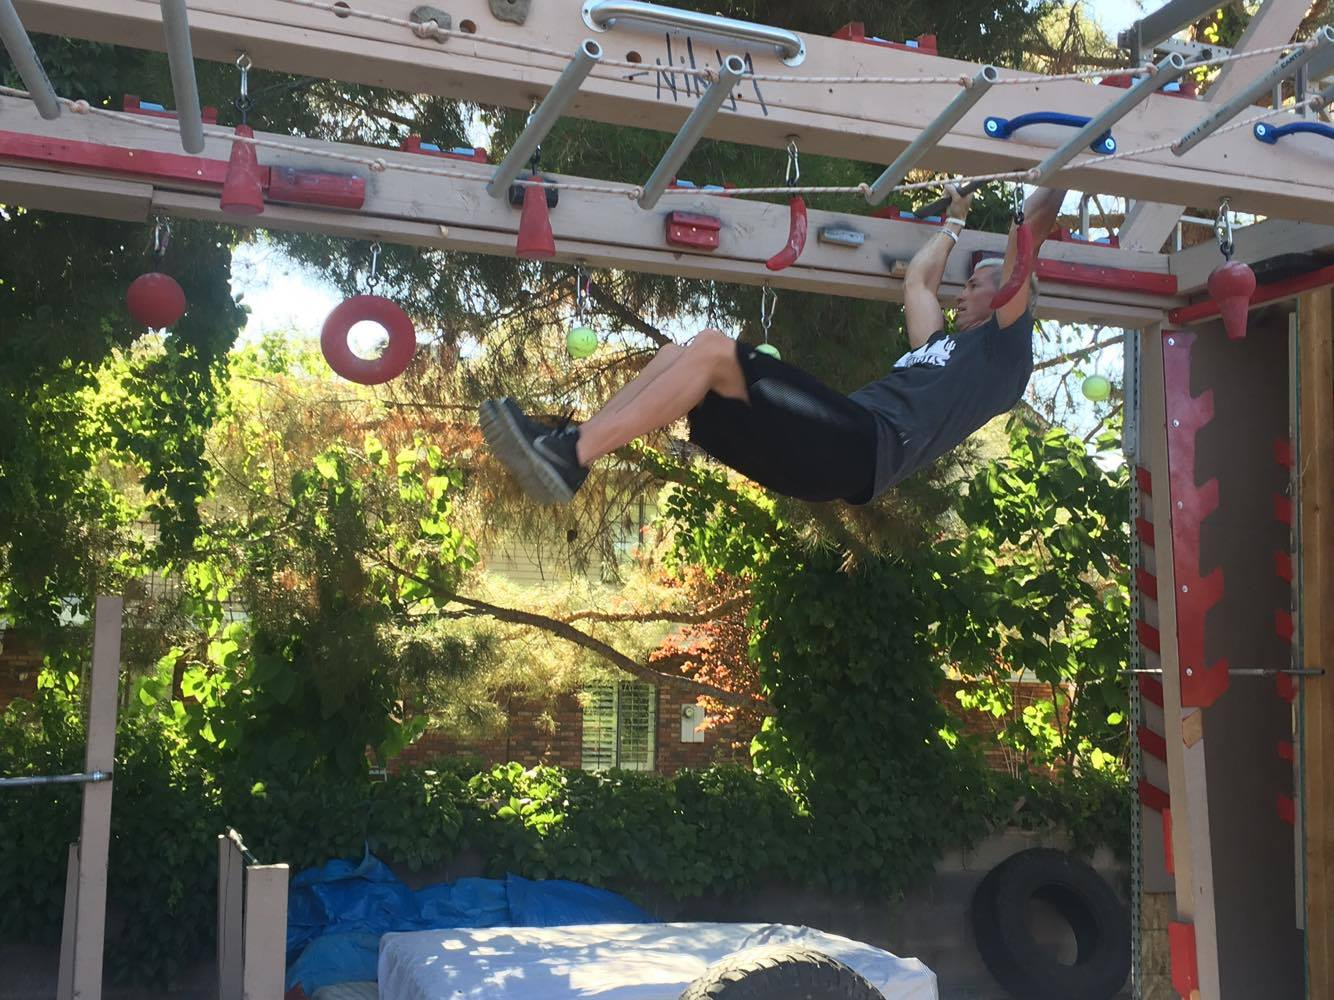 4 st george residents take on nbc u0027s u0027american ninja warrior